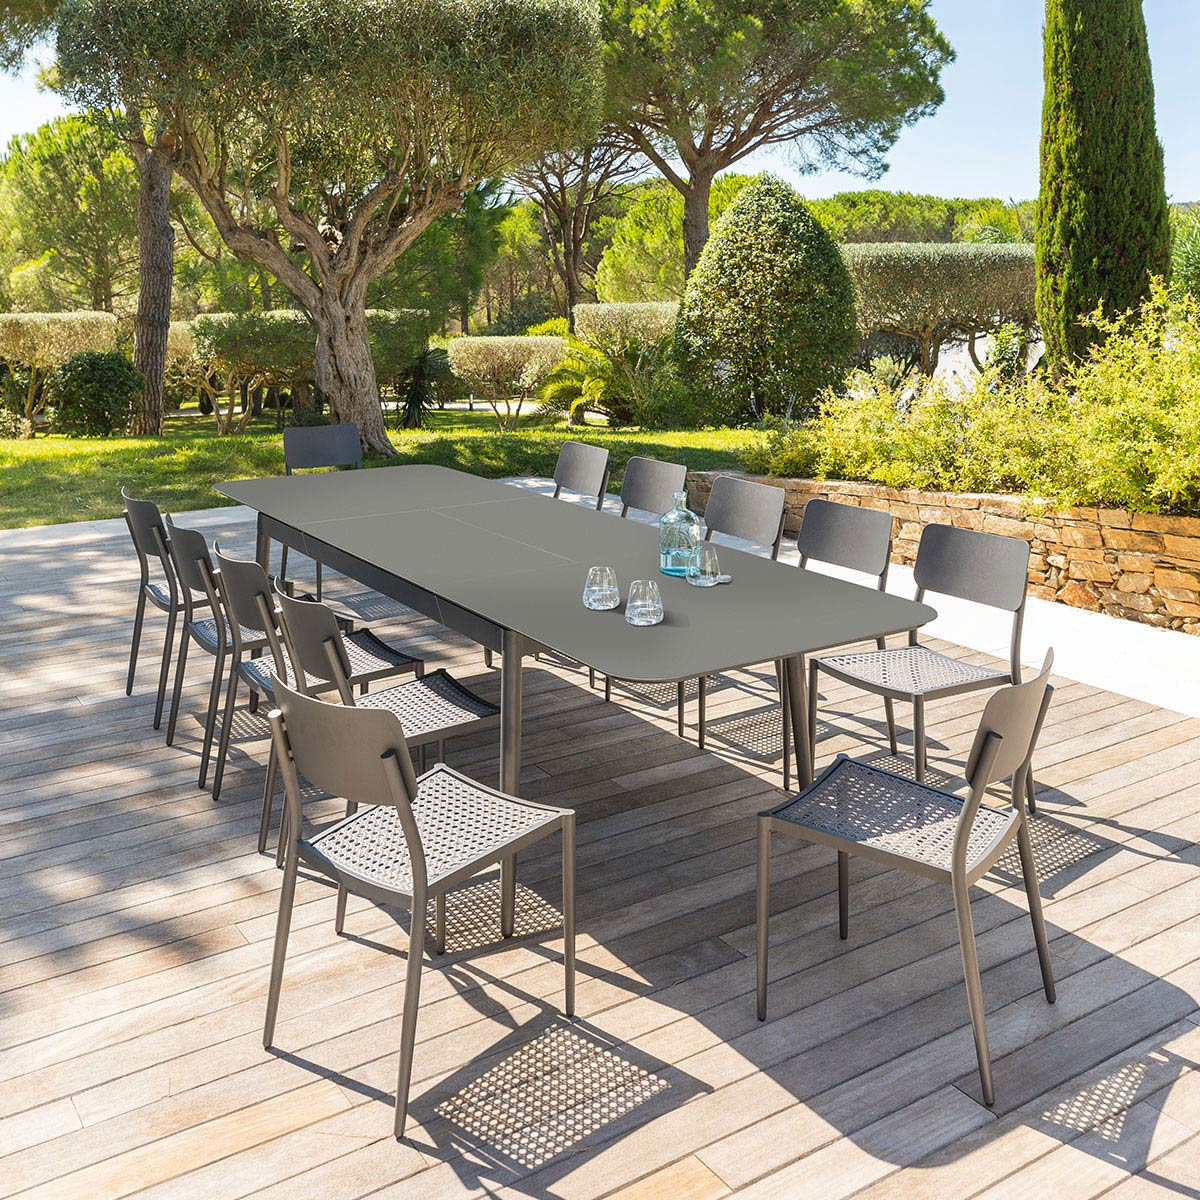 Table de jardin extensible iceland graphite hesp ride 12 places - Salon de jardin alu hesperide ...